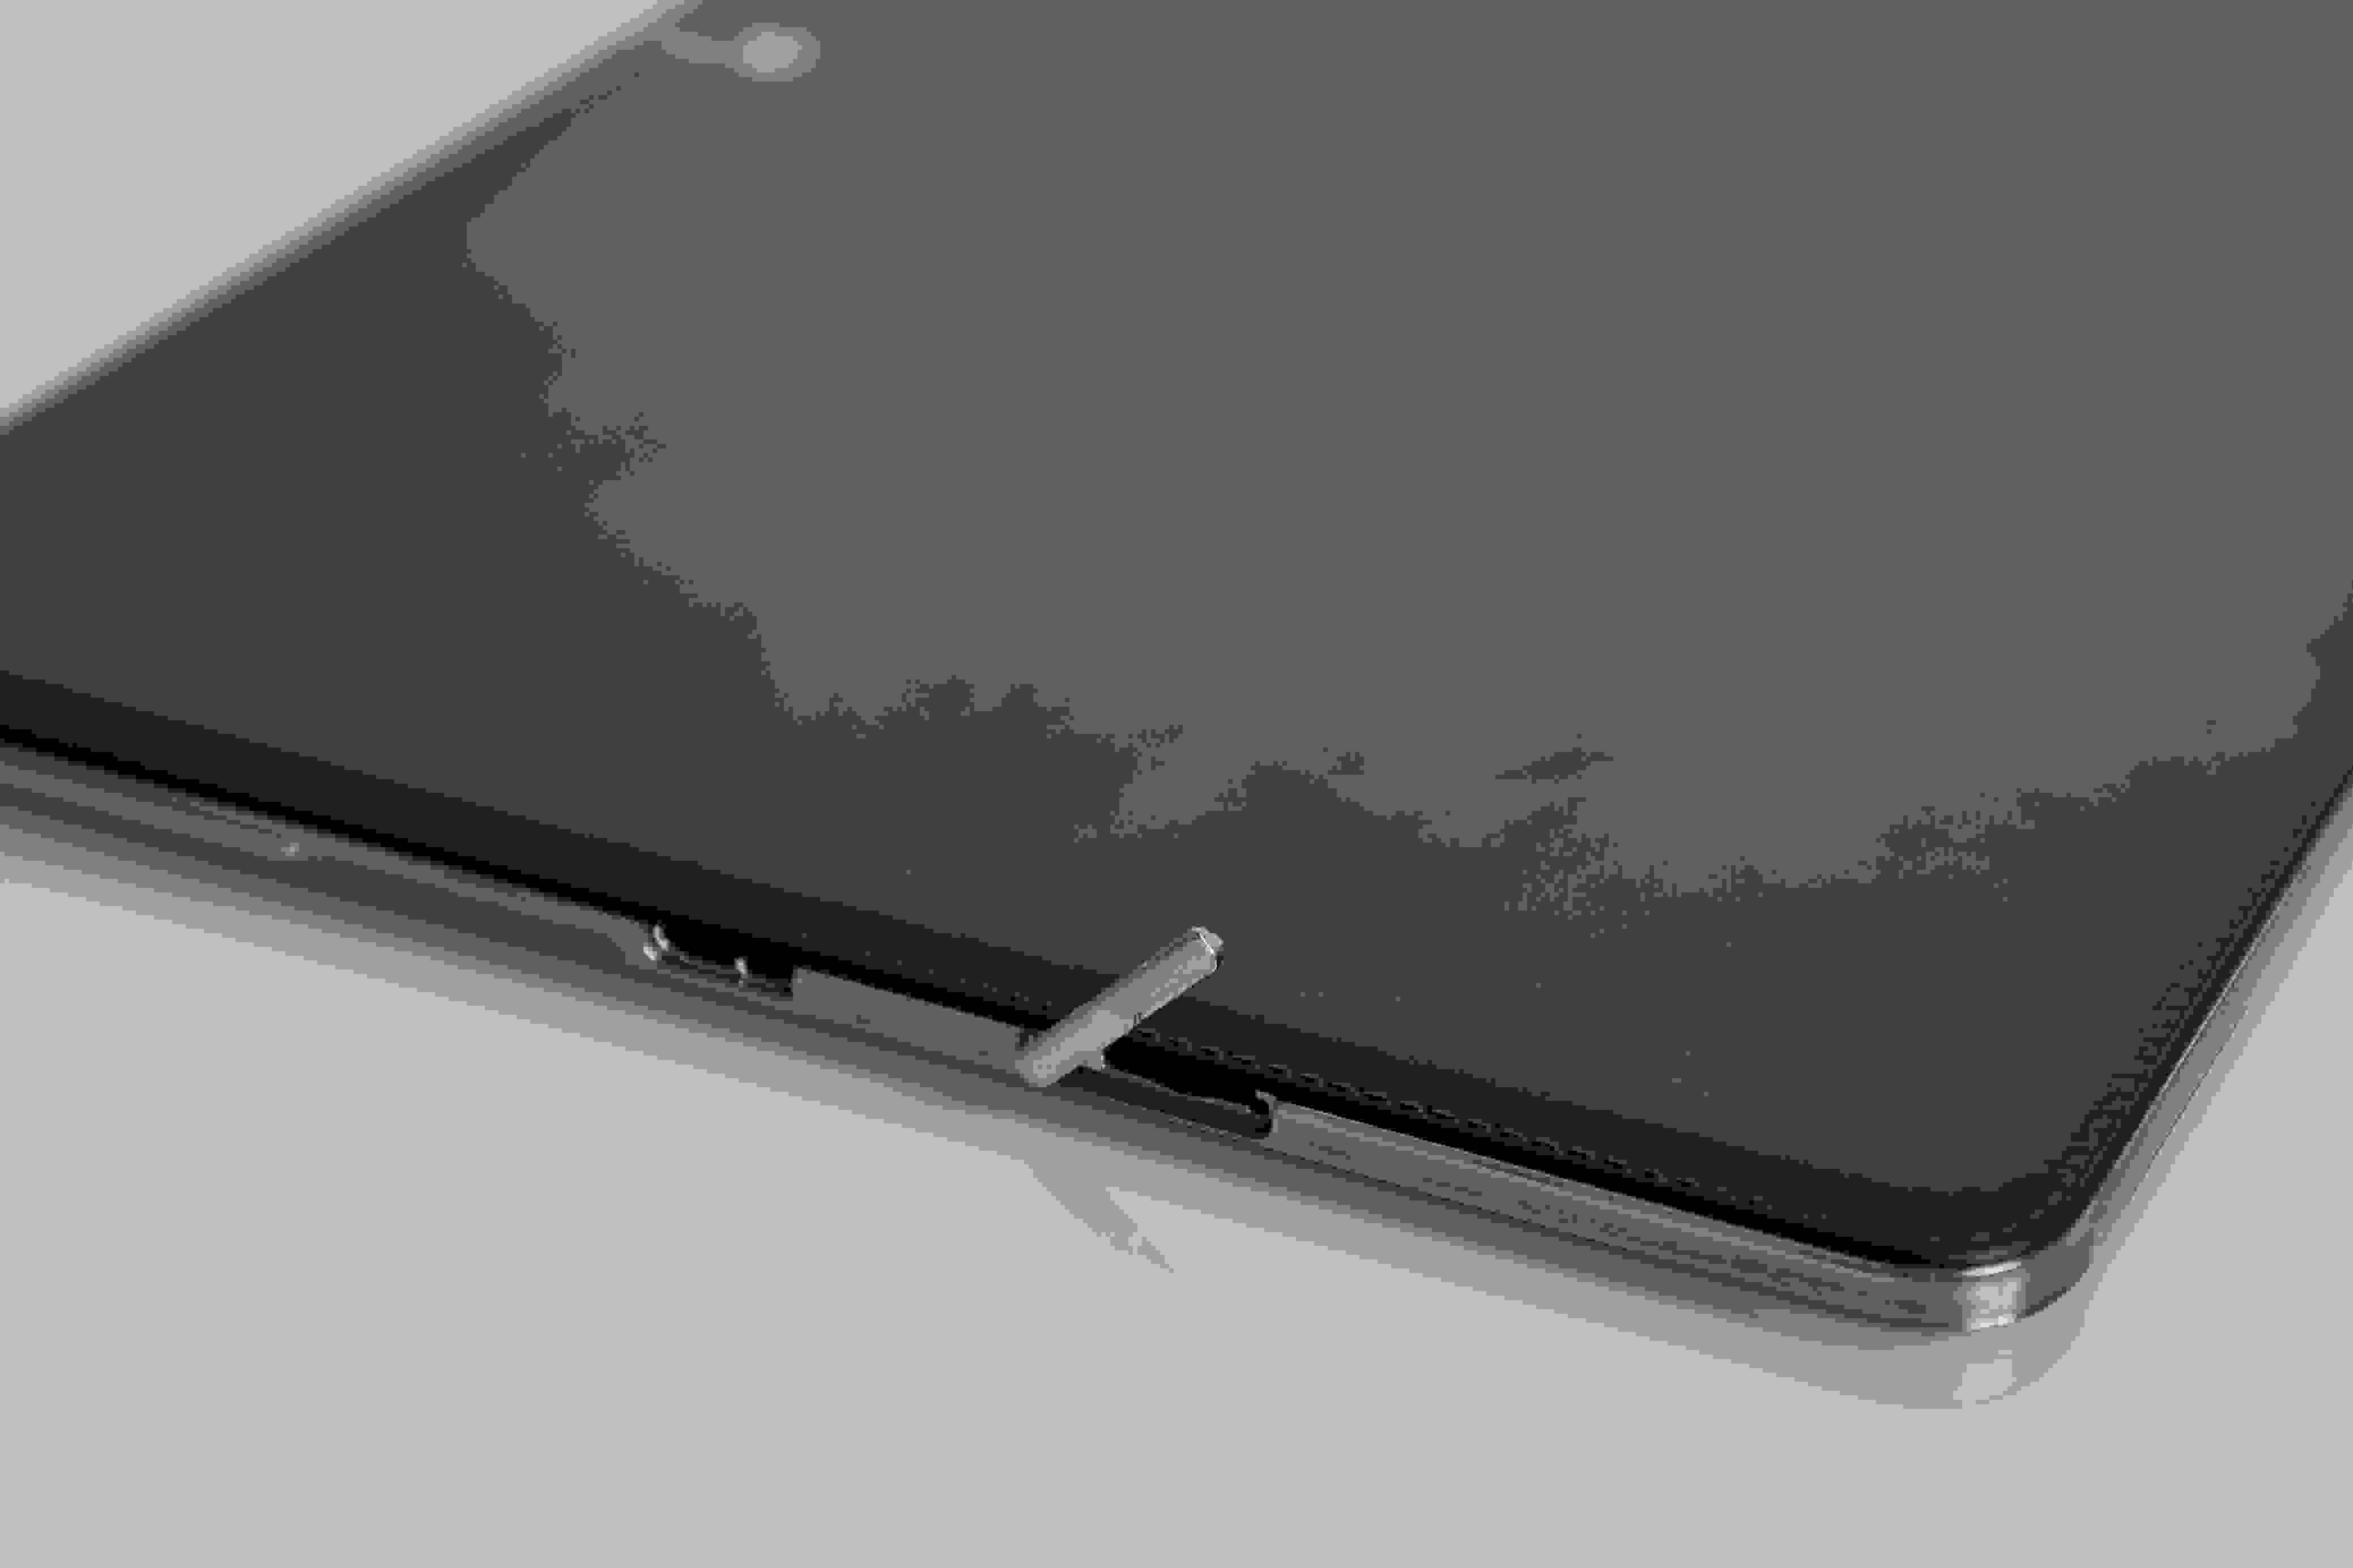 """A close-up of the microSD card slot of the Samsung Galaxy Note Pro 12.2""""."""